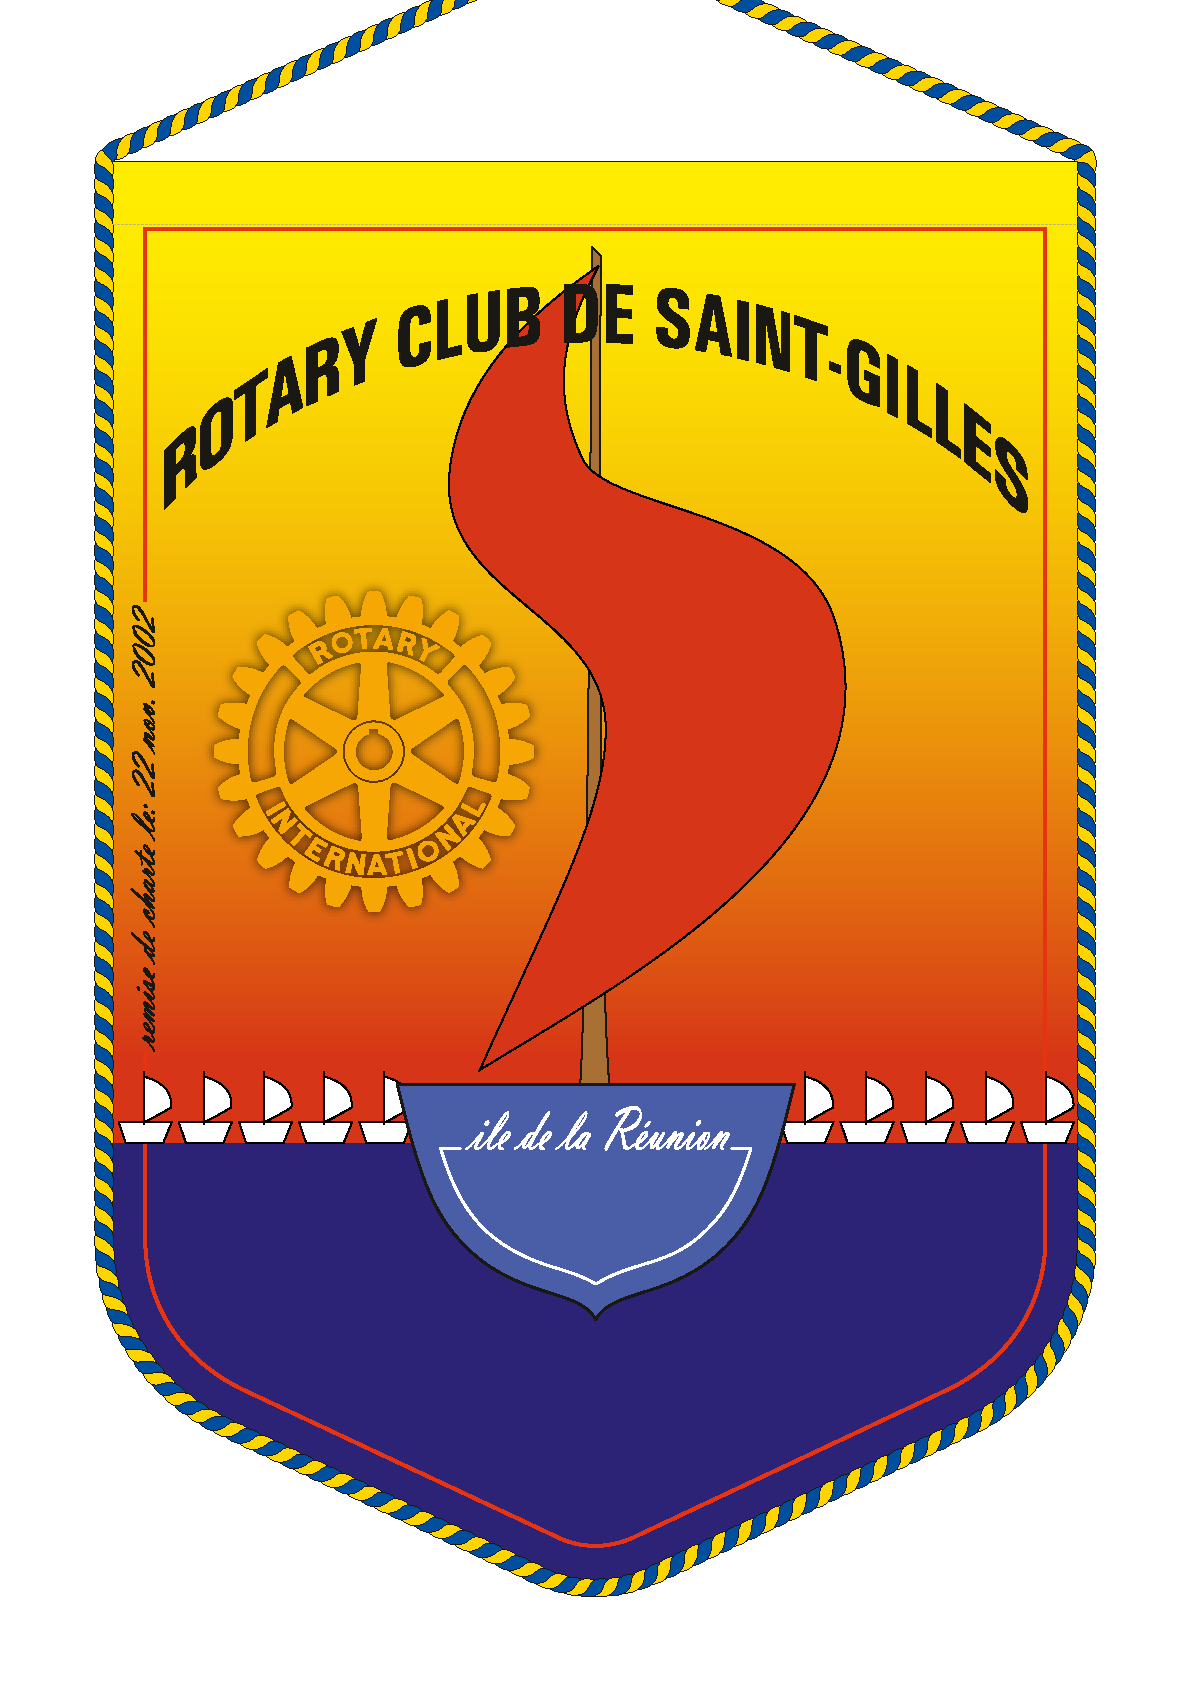 FANION ROTARY CLUB SAINT GILLES